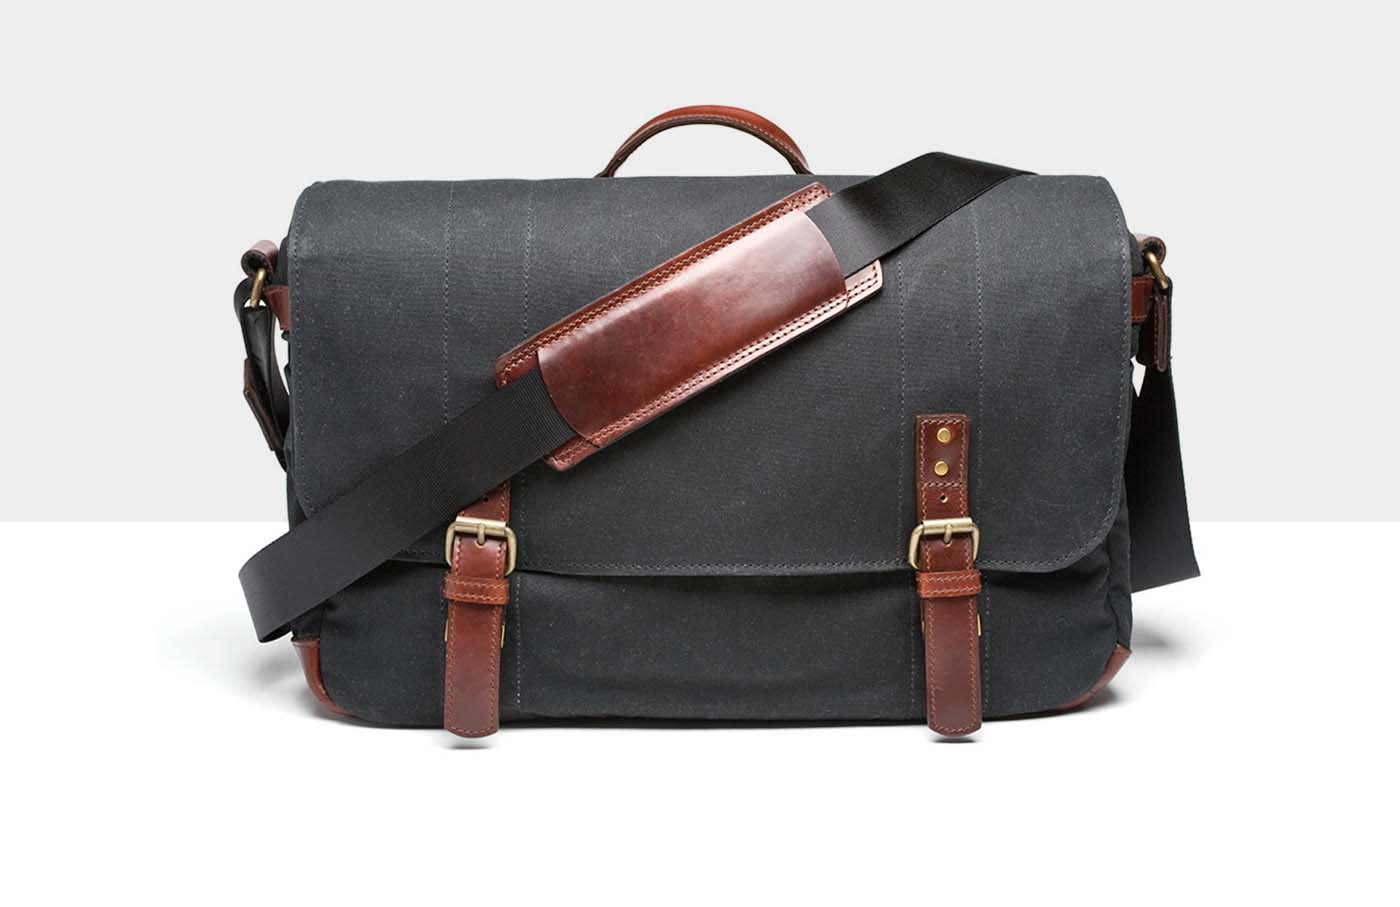 Camera Bags and Hardcases, Backpacks, Messenger Bags, Drone Cases, Shoulder Bags